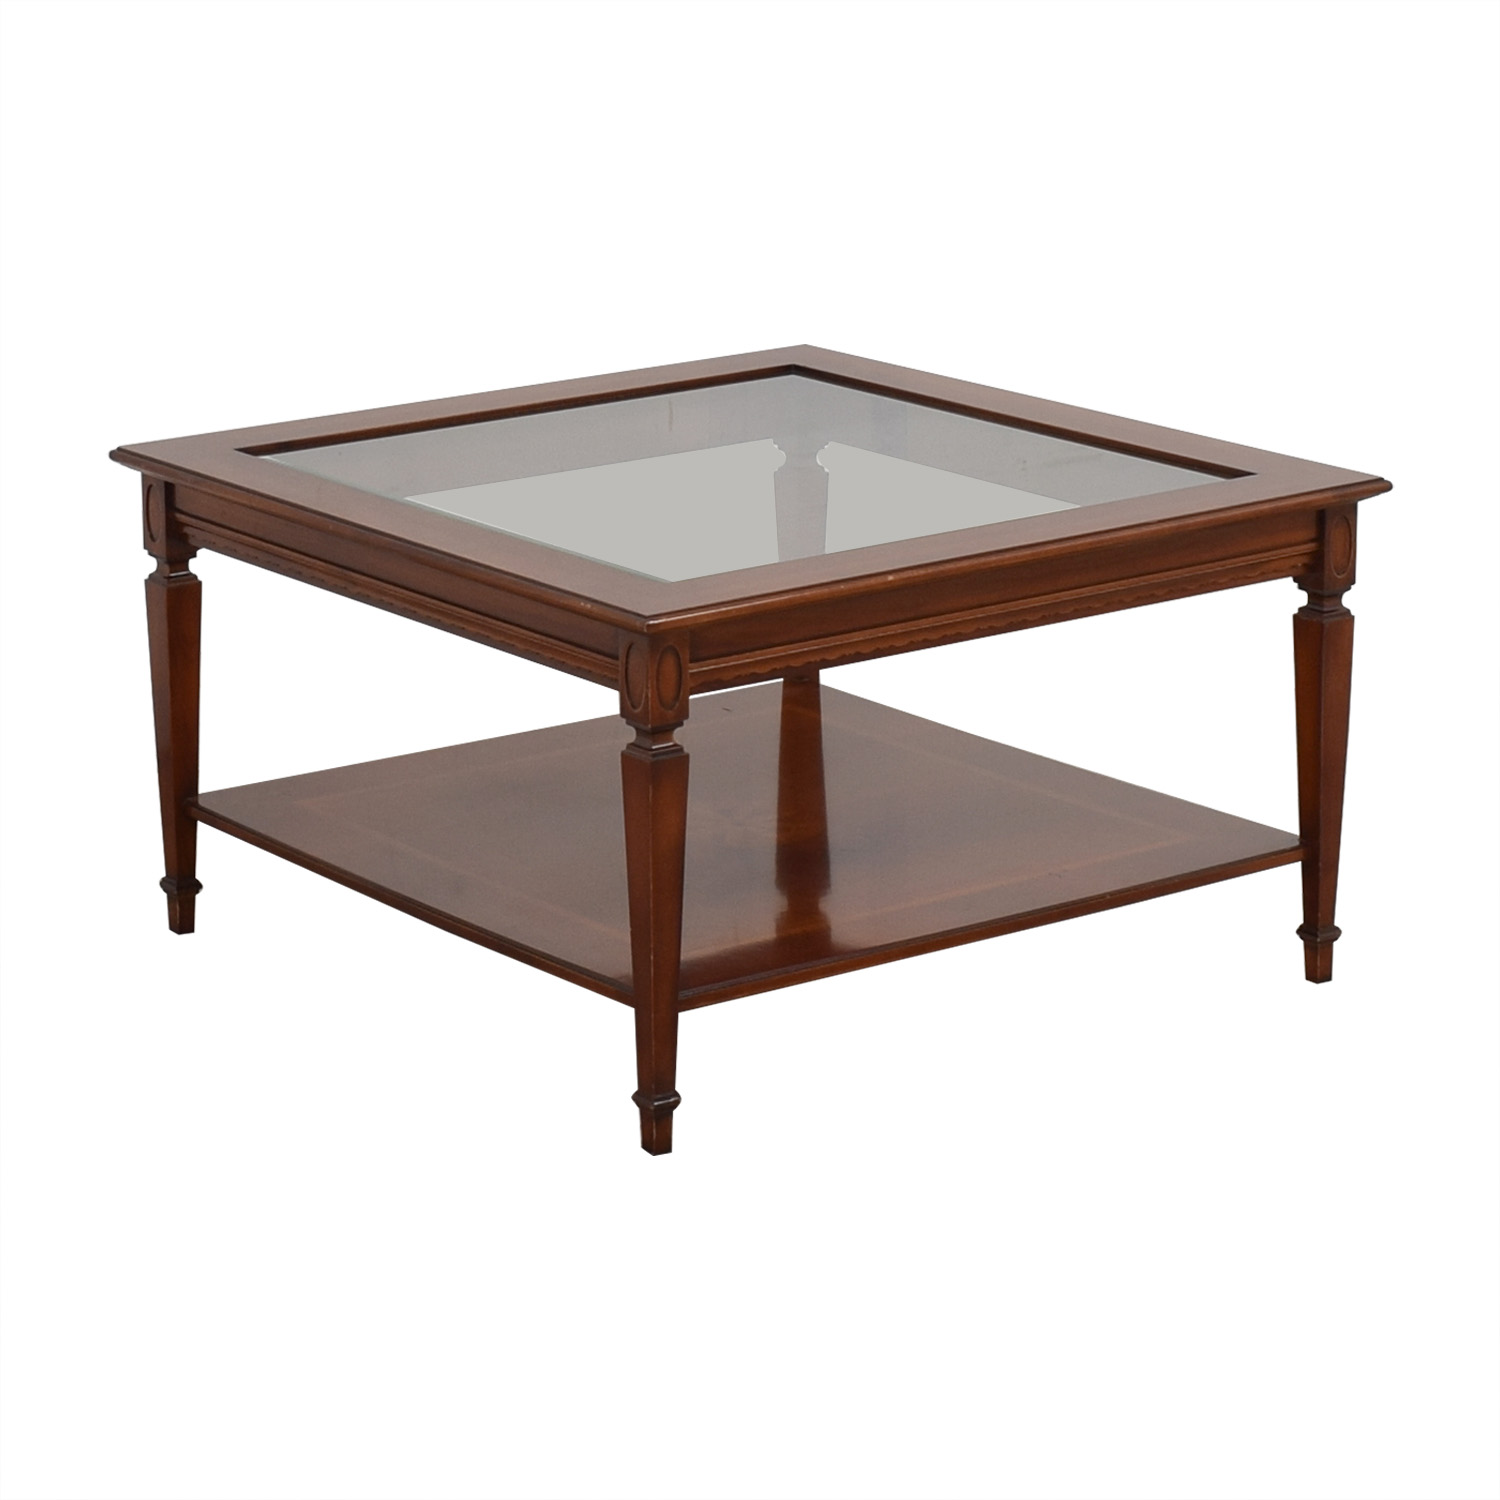 Maurice Villency Glass Top Coffee Table / Tables